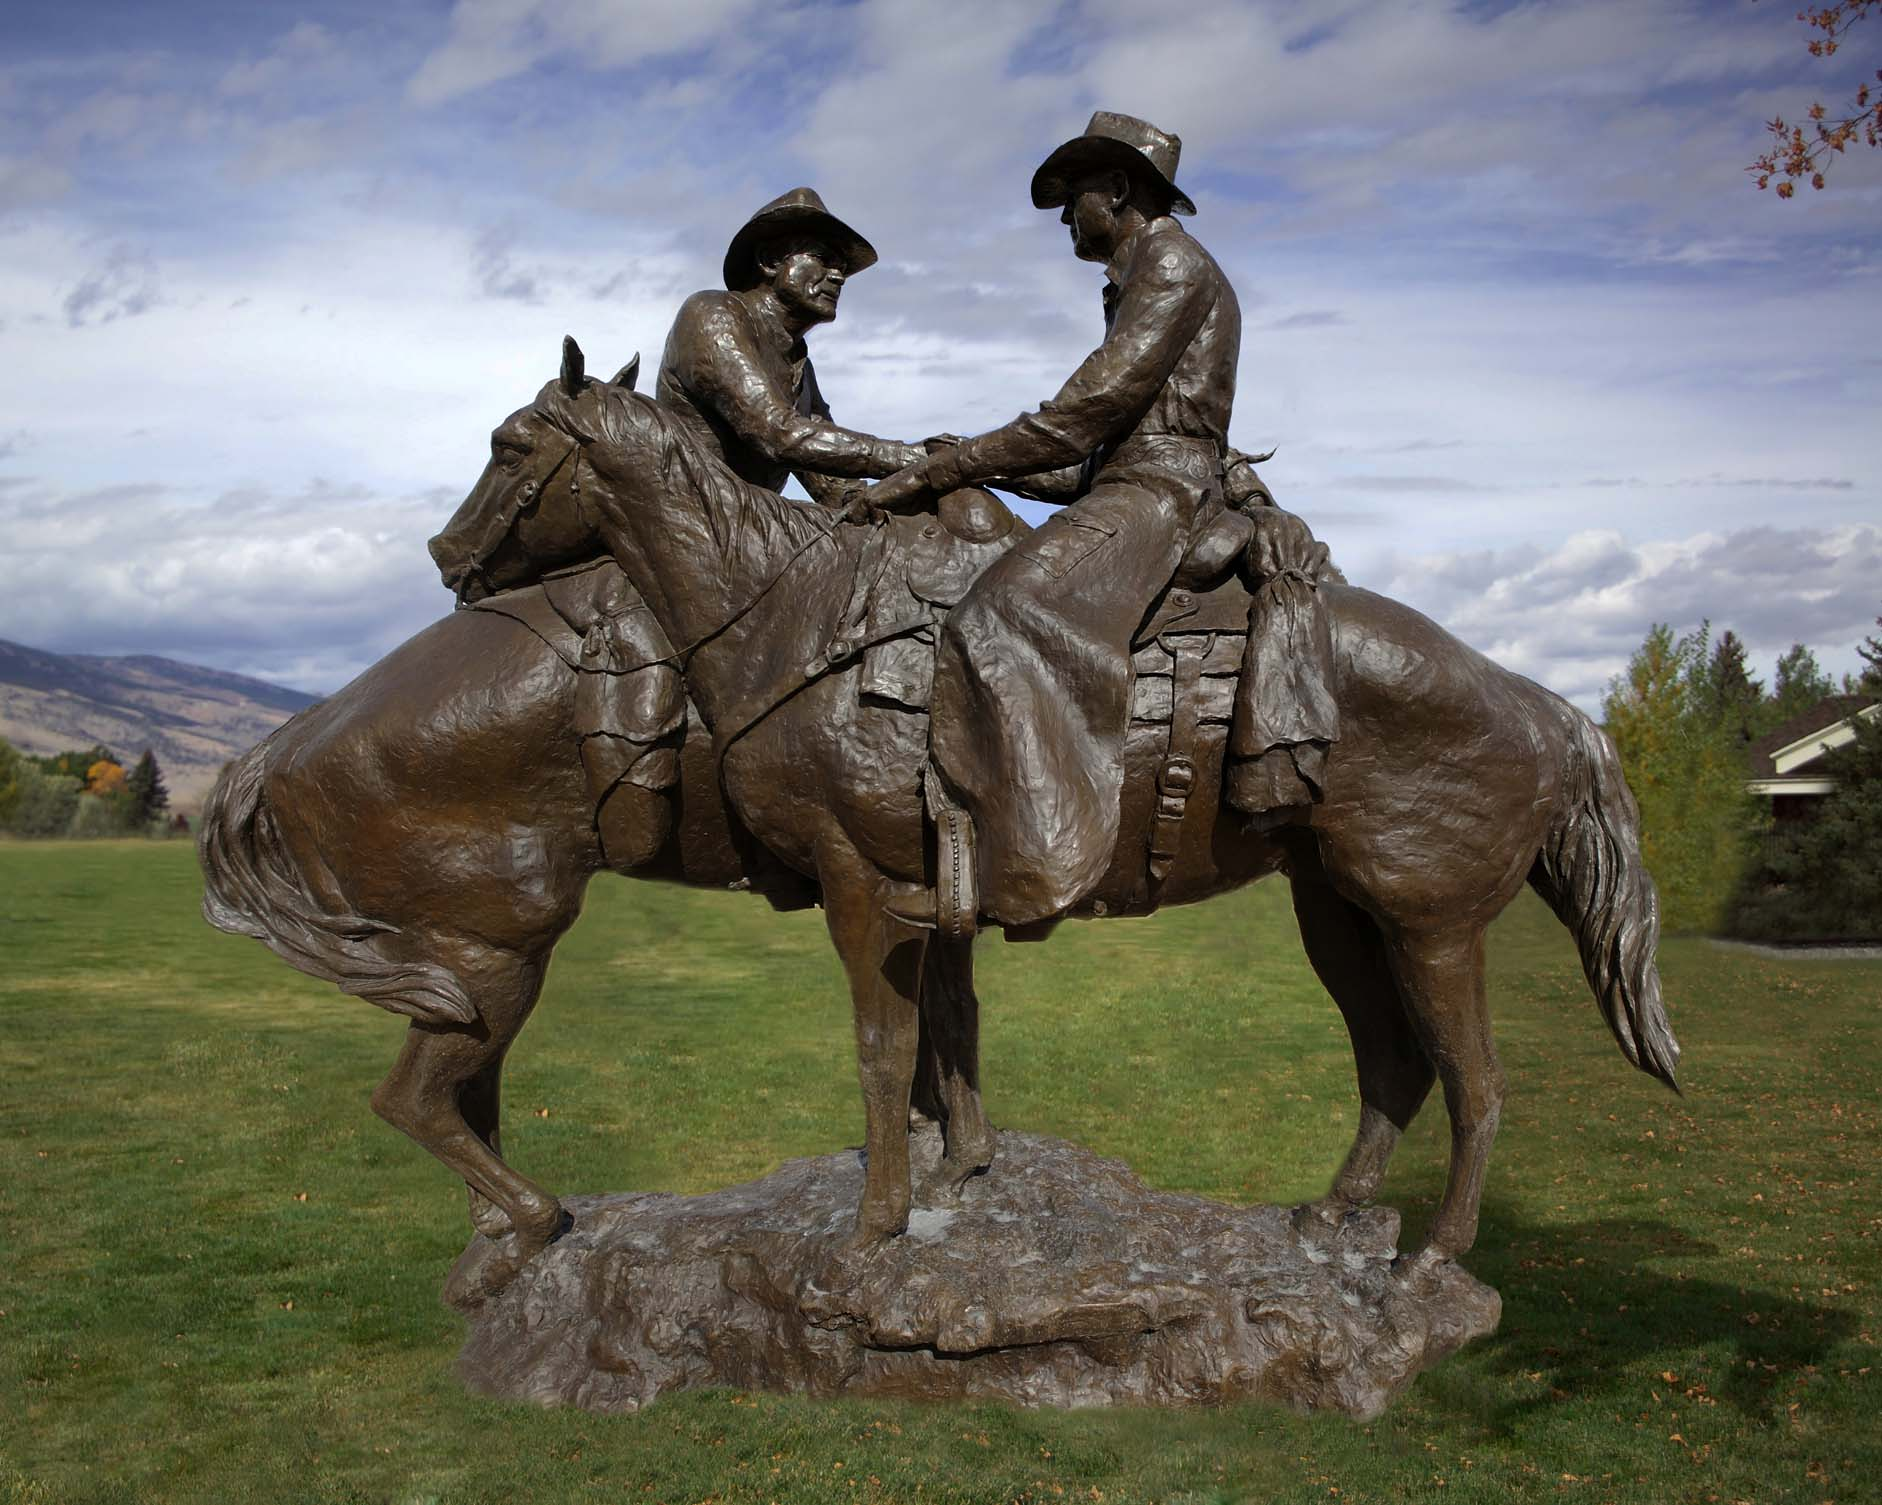 """Herb Mignery (b. 1937). """"Code of the West,"""" 1998. Bronze, 140 x 137 x 72 inches. Gift of Mike Kammerer / Cody of the West Foundation. 9.01"""